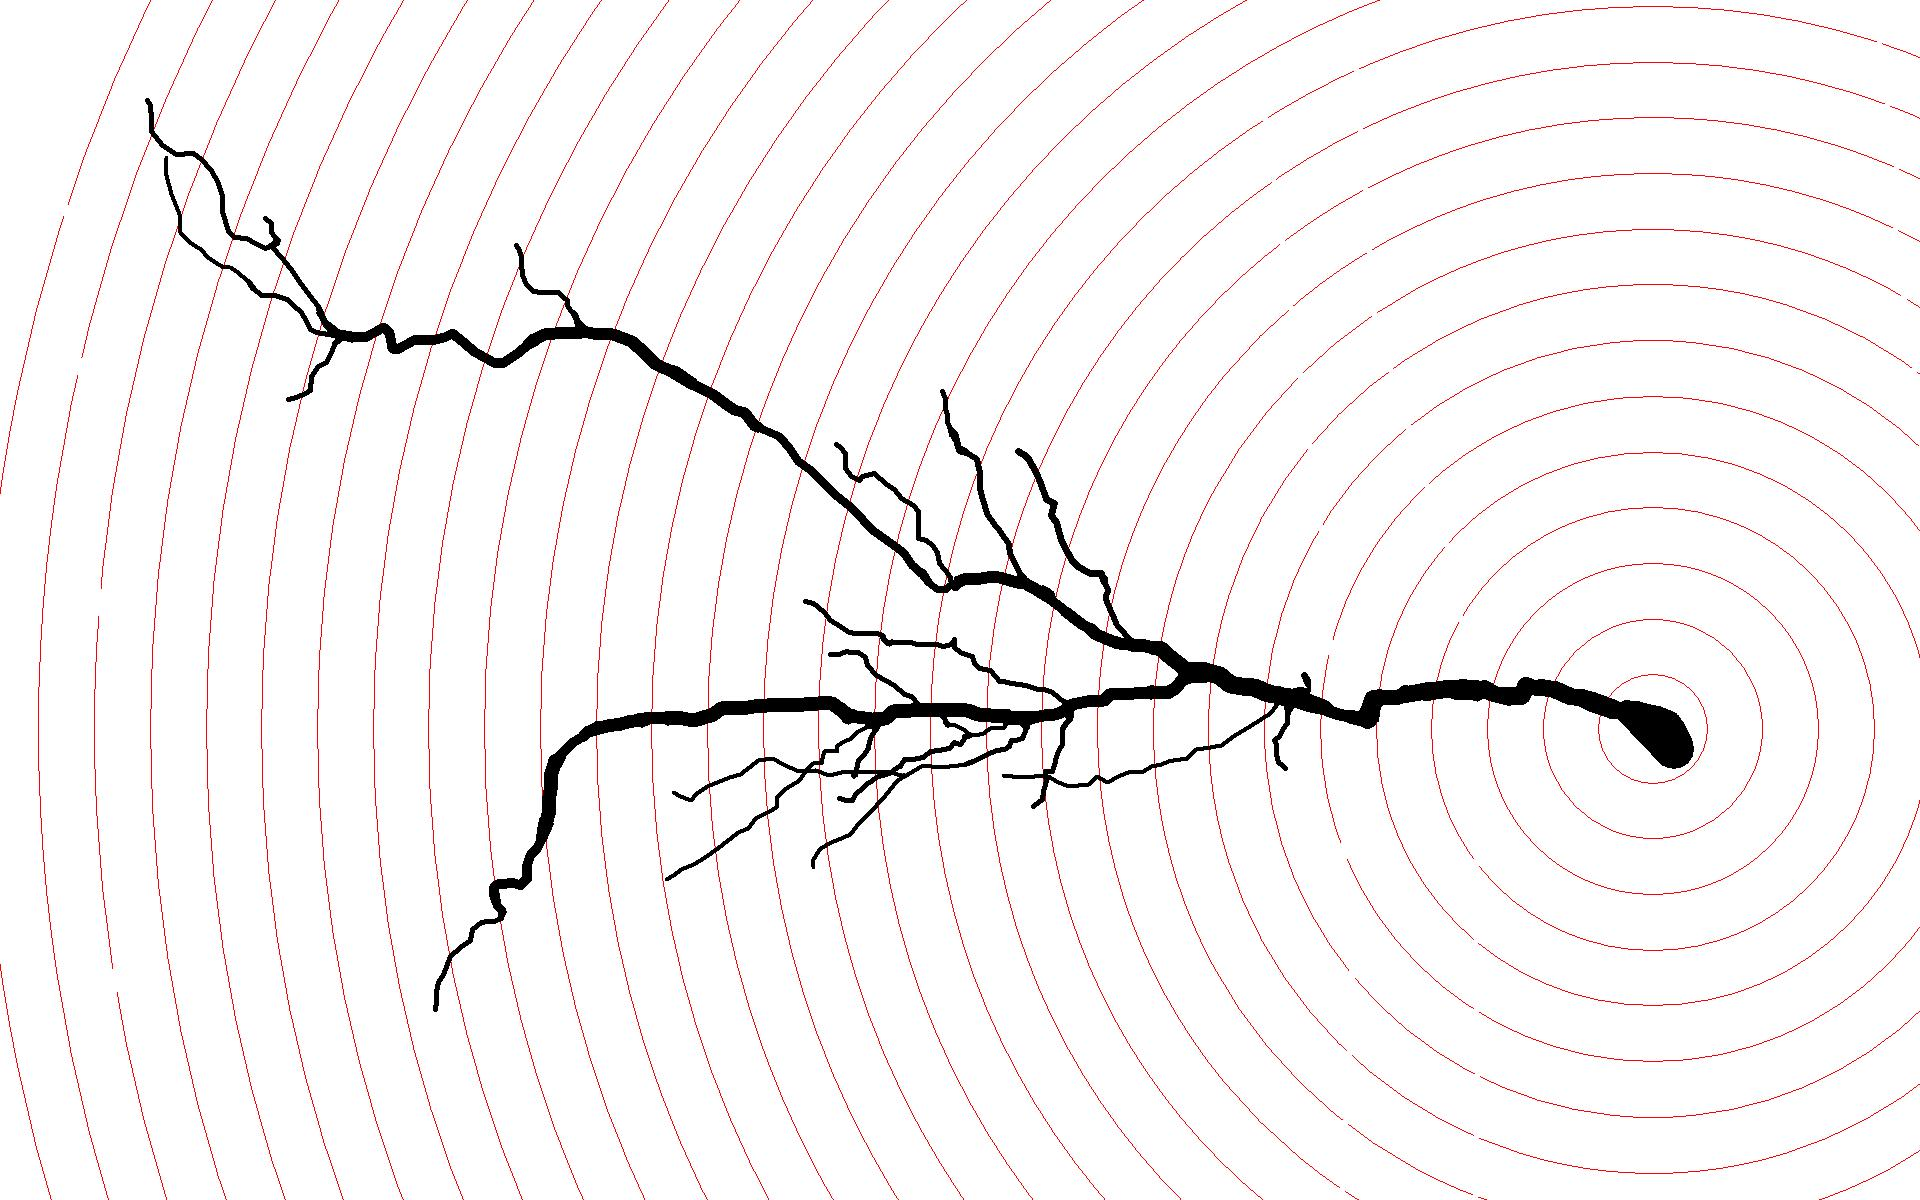 A digital reconstruction of a CA1 pyramidal cell from the ventral hippocampus, traced using Neurolucida with Sholl spheres at 20 micron intervals. Cells in this region featured greater dendritic length and branching versus controls.